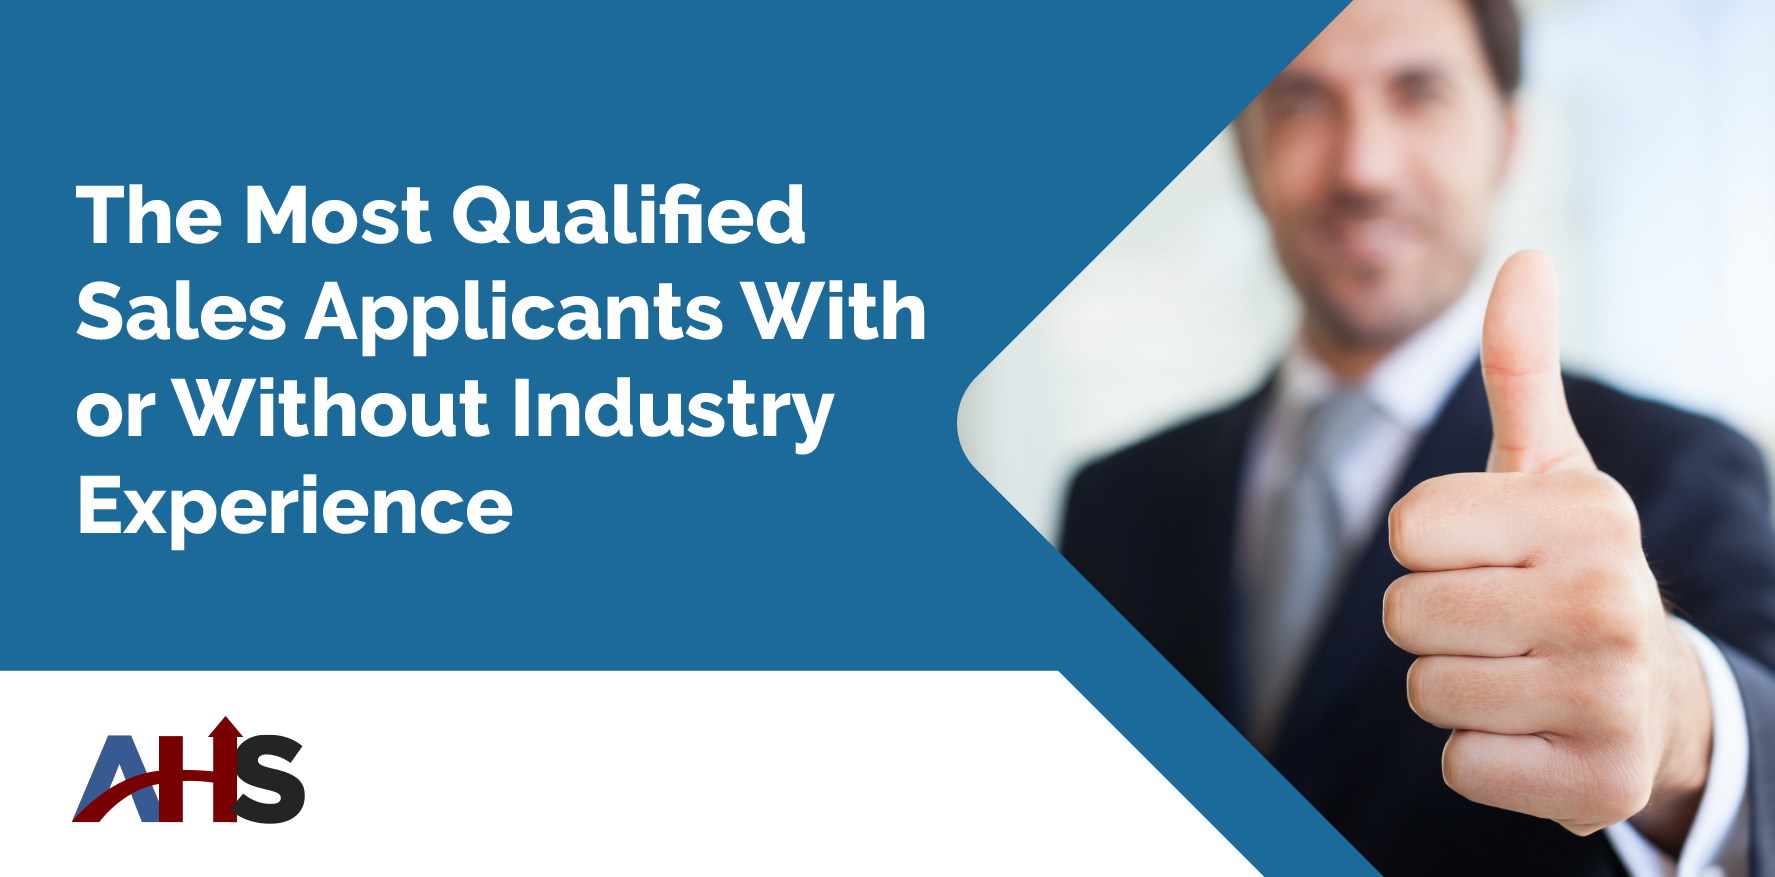 The Most Qualified Sales Applicants With or Without Industry Experience